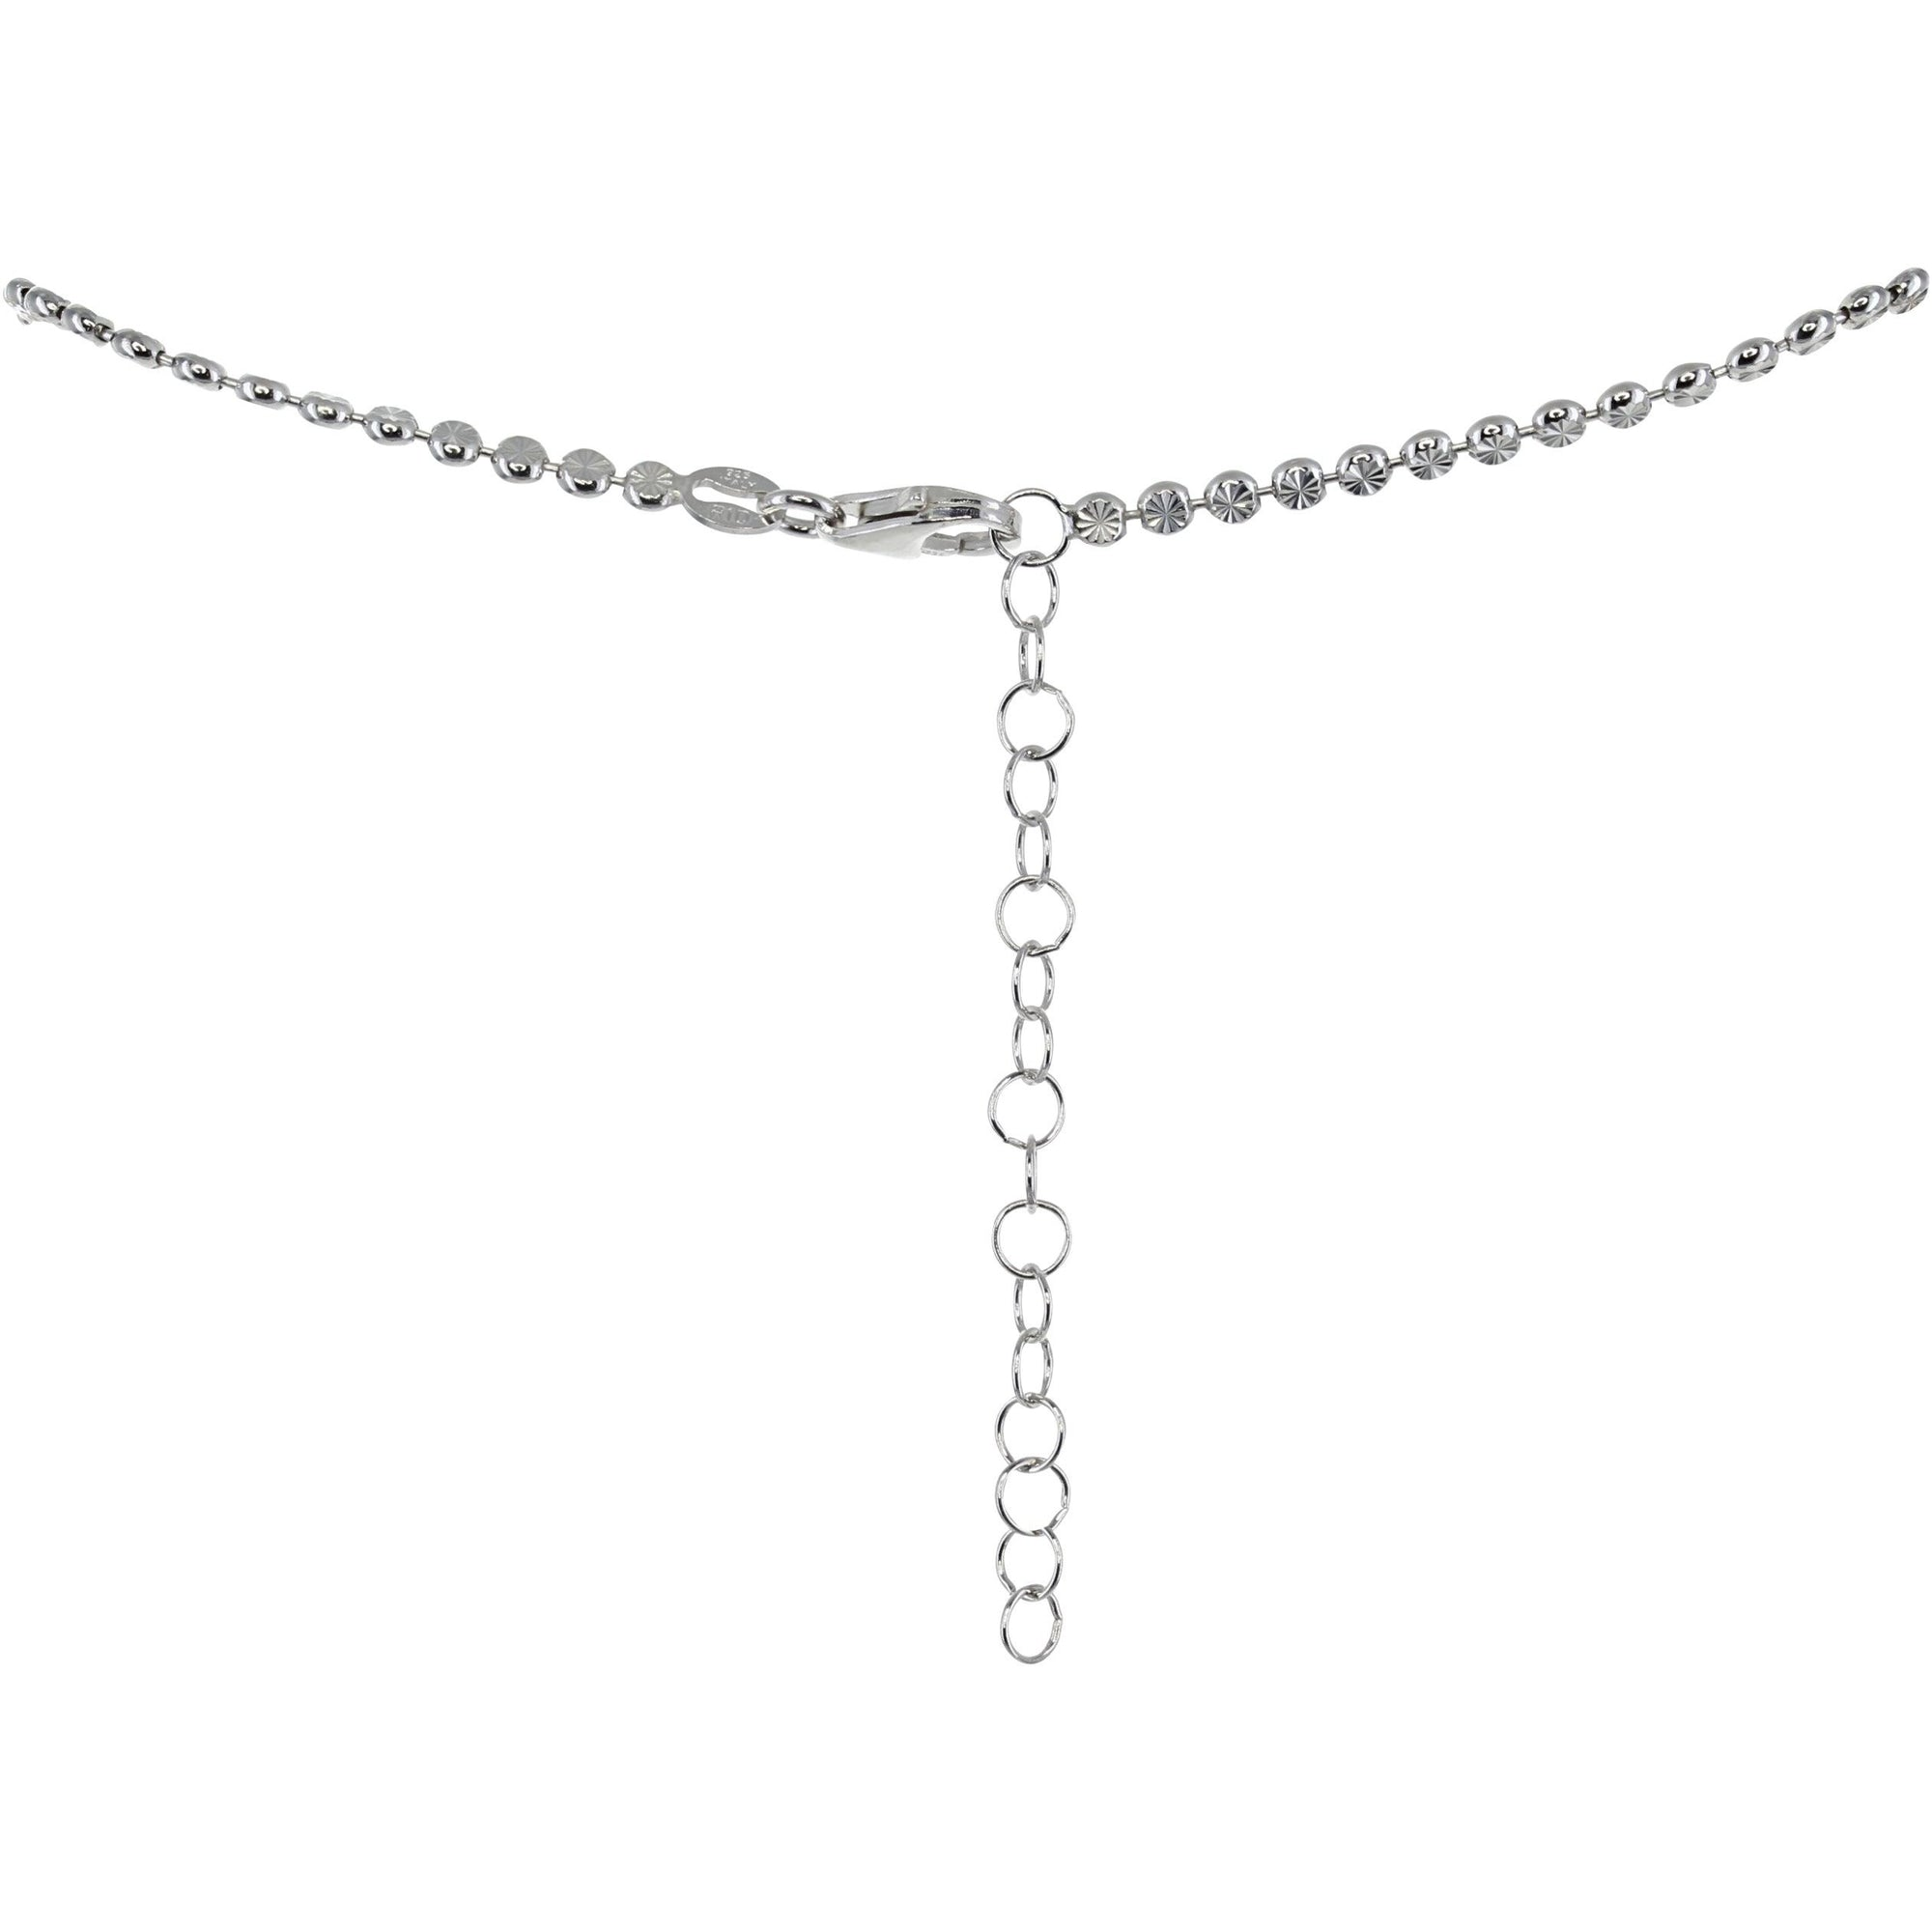 Roma Private Collection Necklaces Color / Silver Private Collection Disc Necklace in Rhodium Vermeil